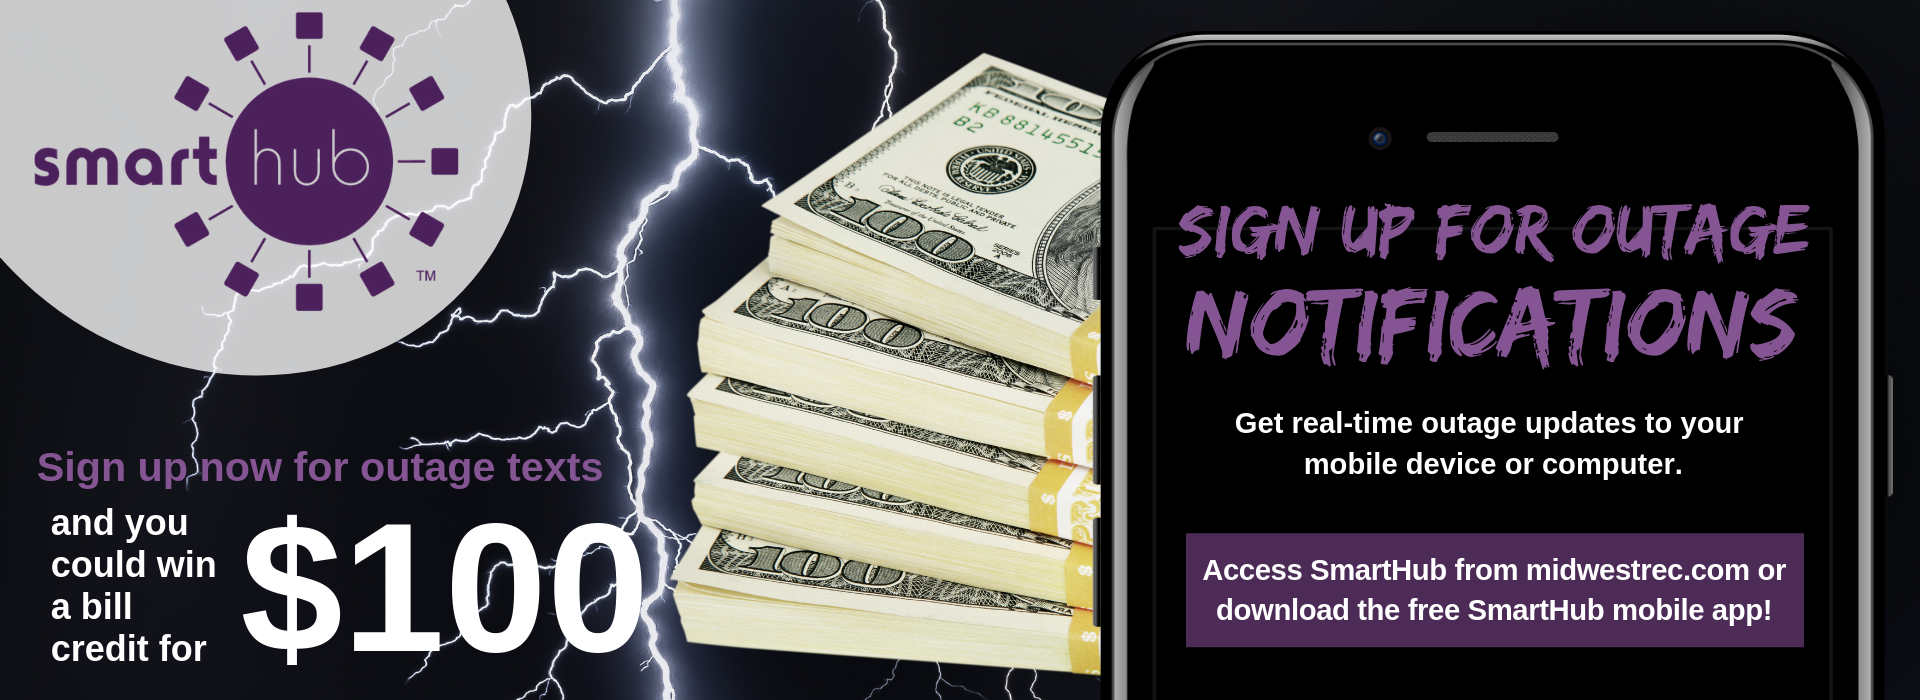 Sign up for outage notifications by text and you could win $100